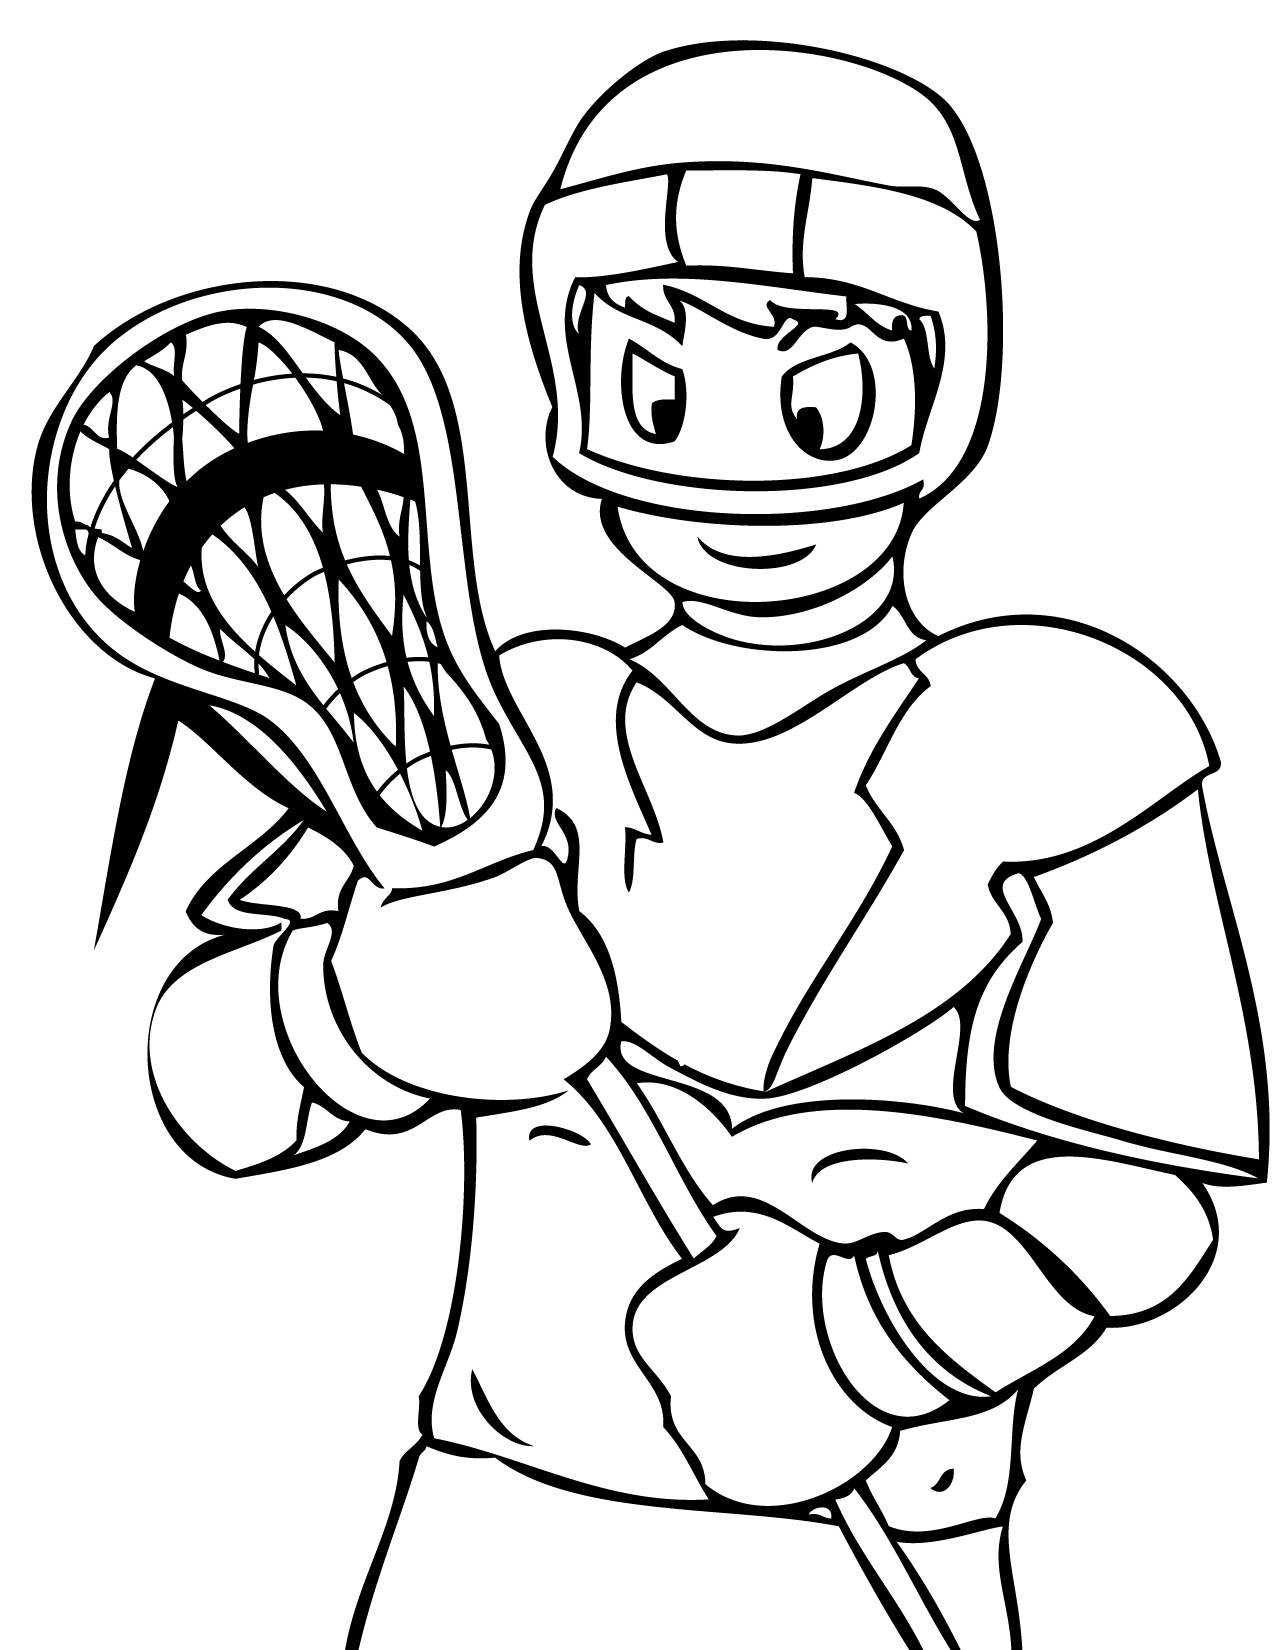 free printable sports coloring pages printable sports coloring pages for kids free printable printable free coloring sports pages